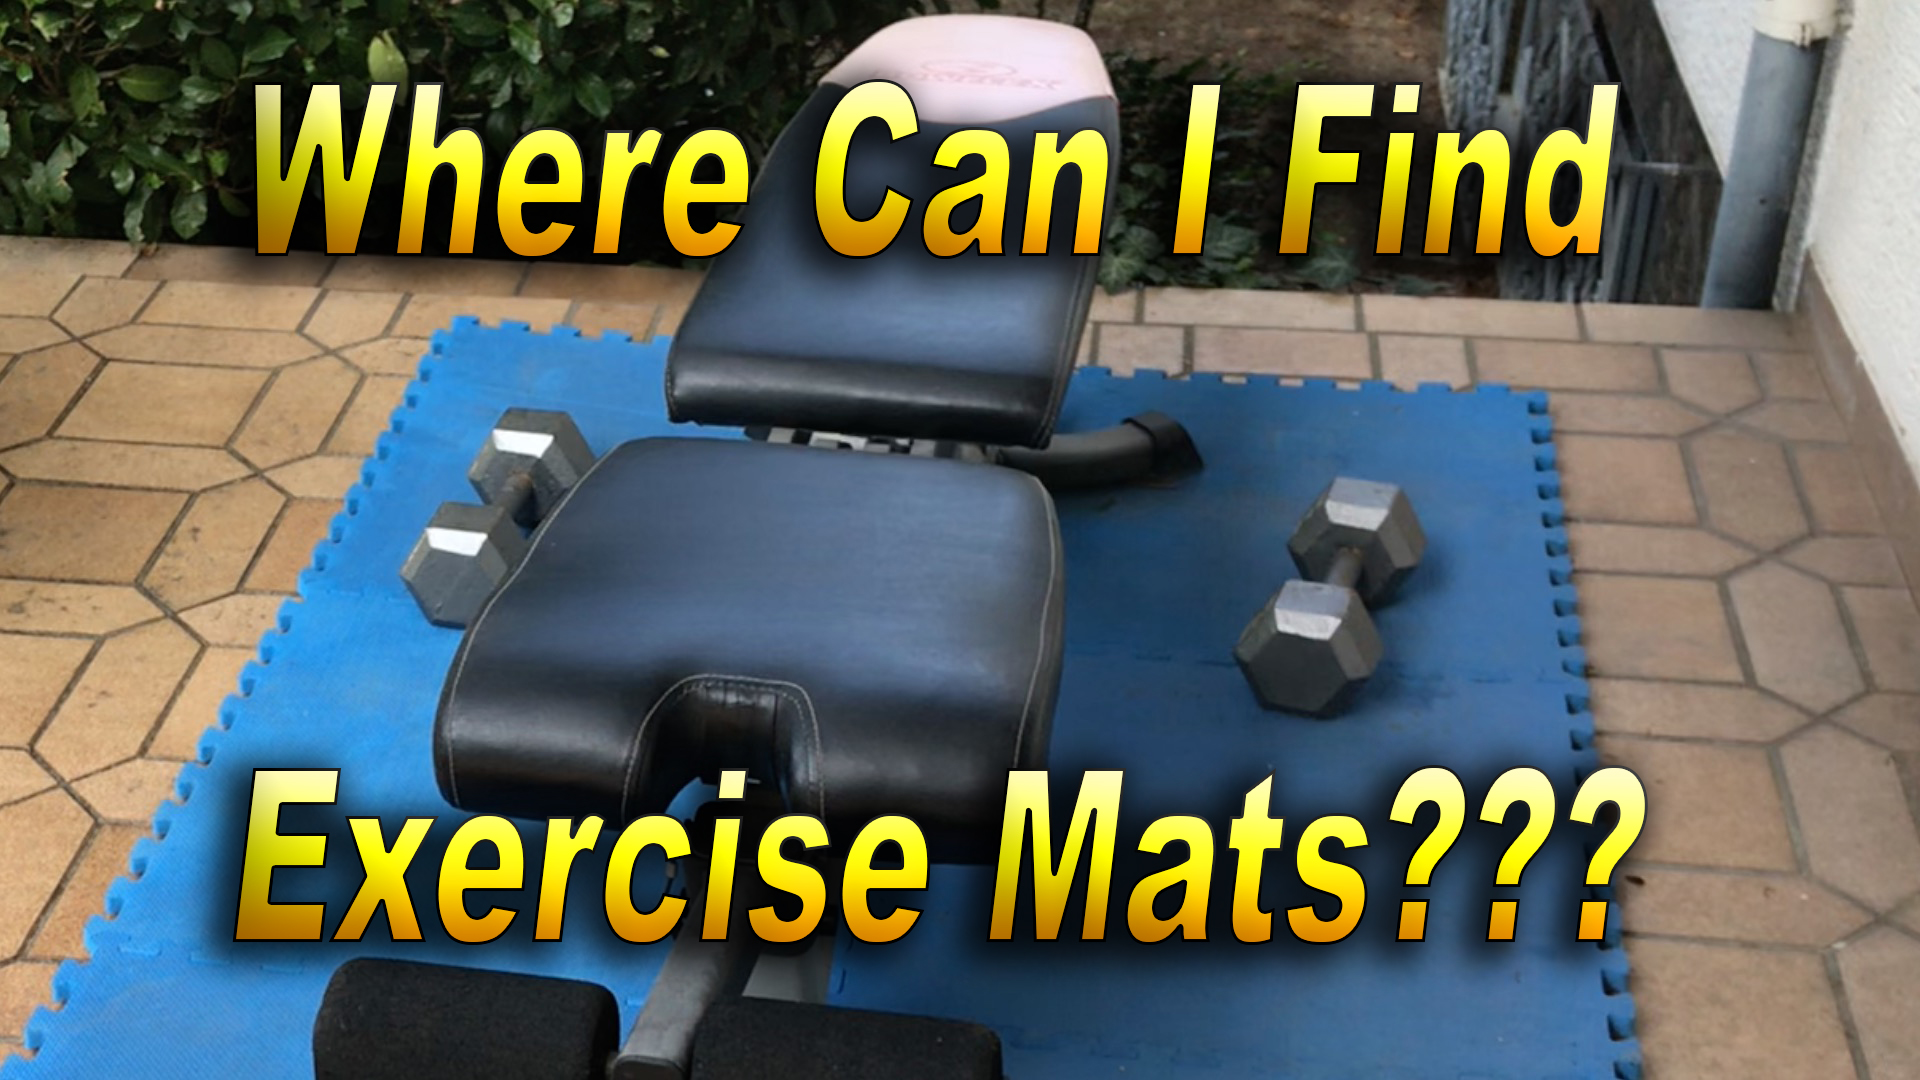 Where Can I Find Exercise Mats